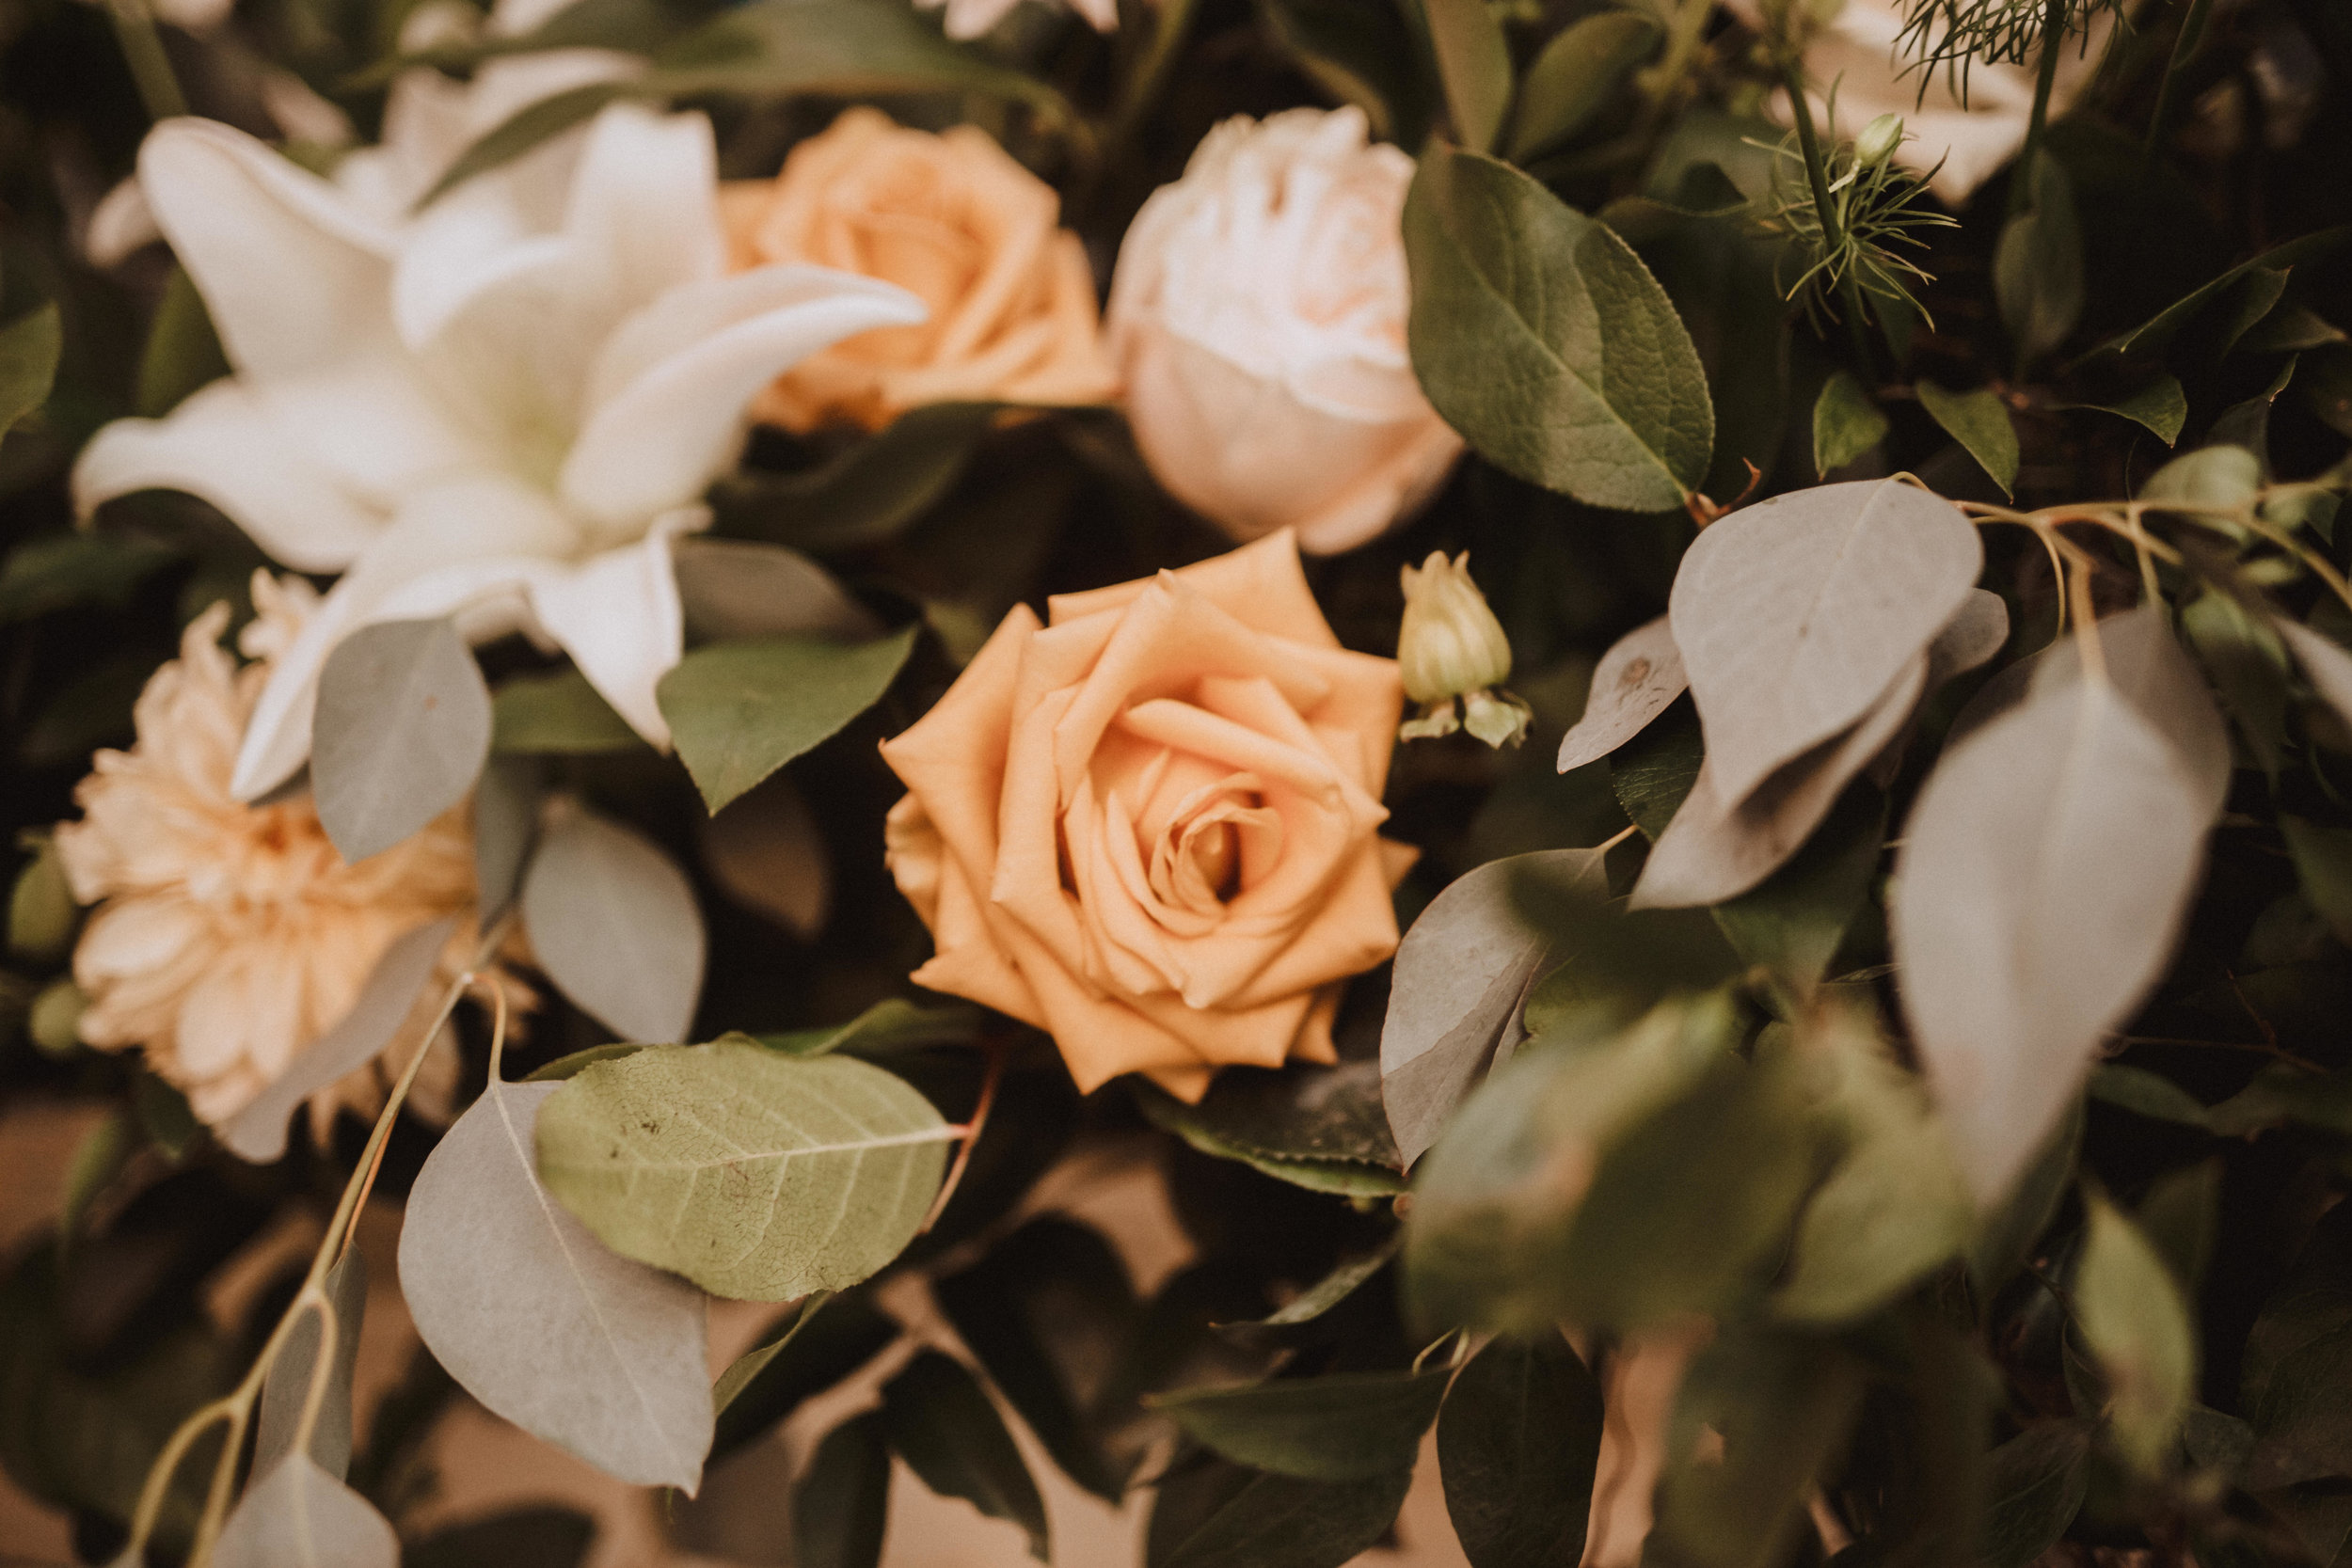 Well hello there… - We'll be expecting your call and can't wait to chat with you! Please contact us with any details and we'll get back in touch with you as soon as possible. brandon@eventsbymode.com(240) 644.3279